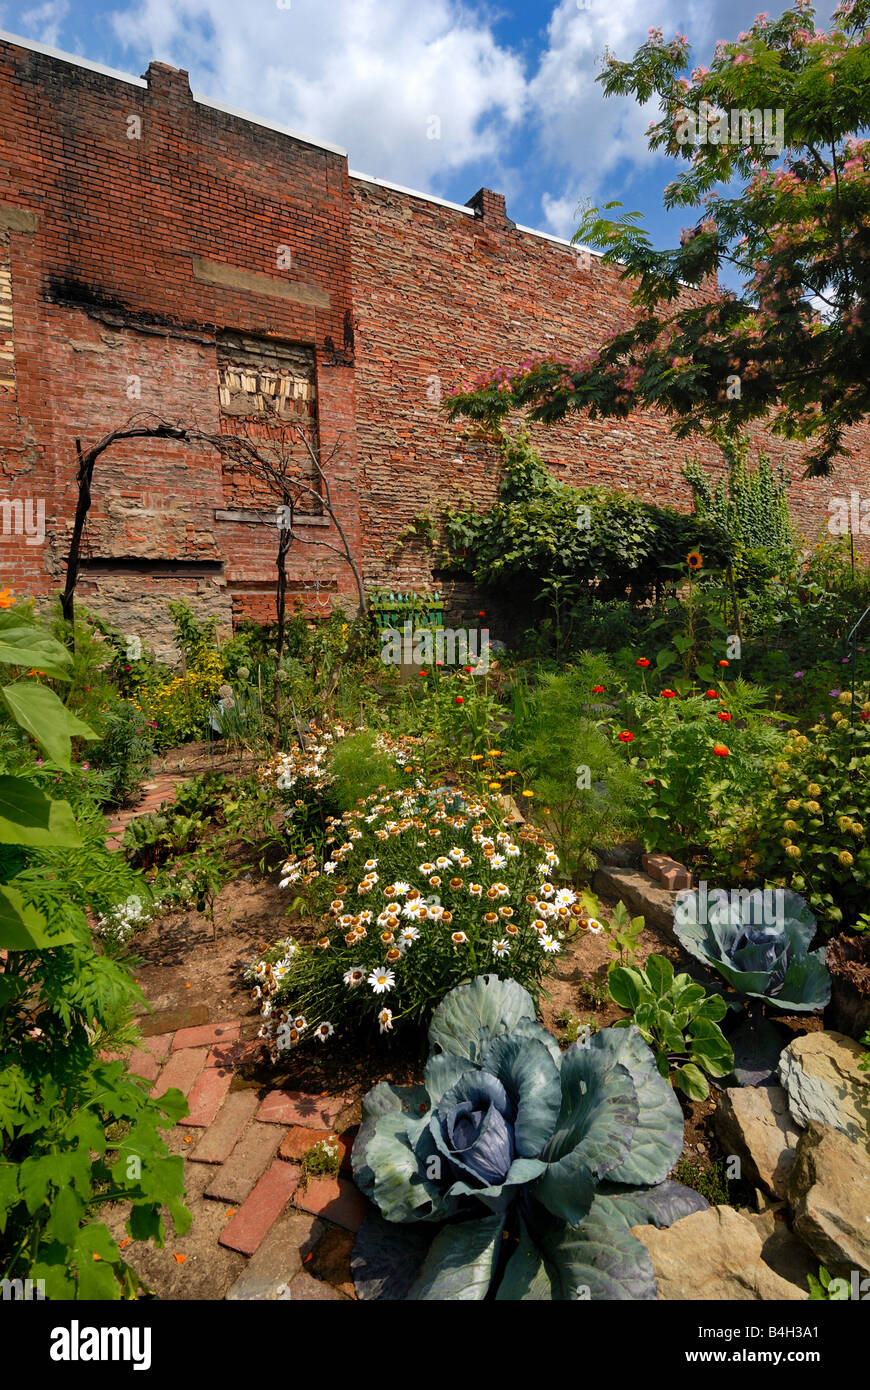 Conservancy Garden Stock Photos & Conservancy Garden Stock Images ...